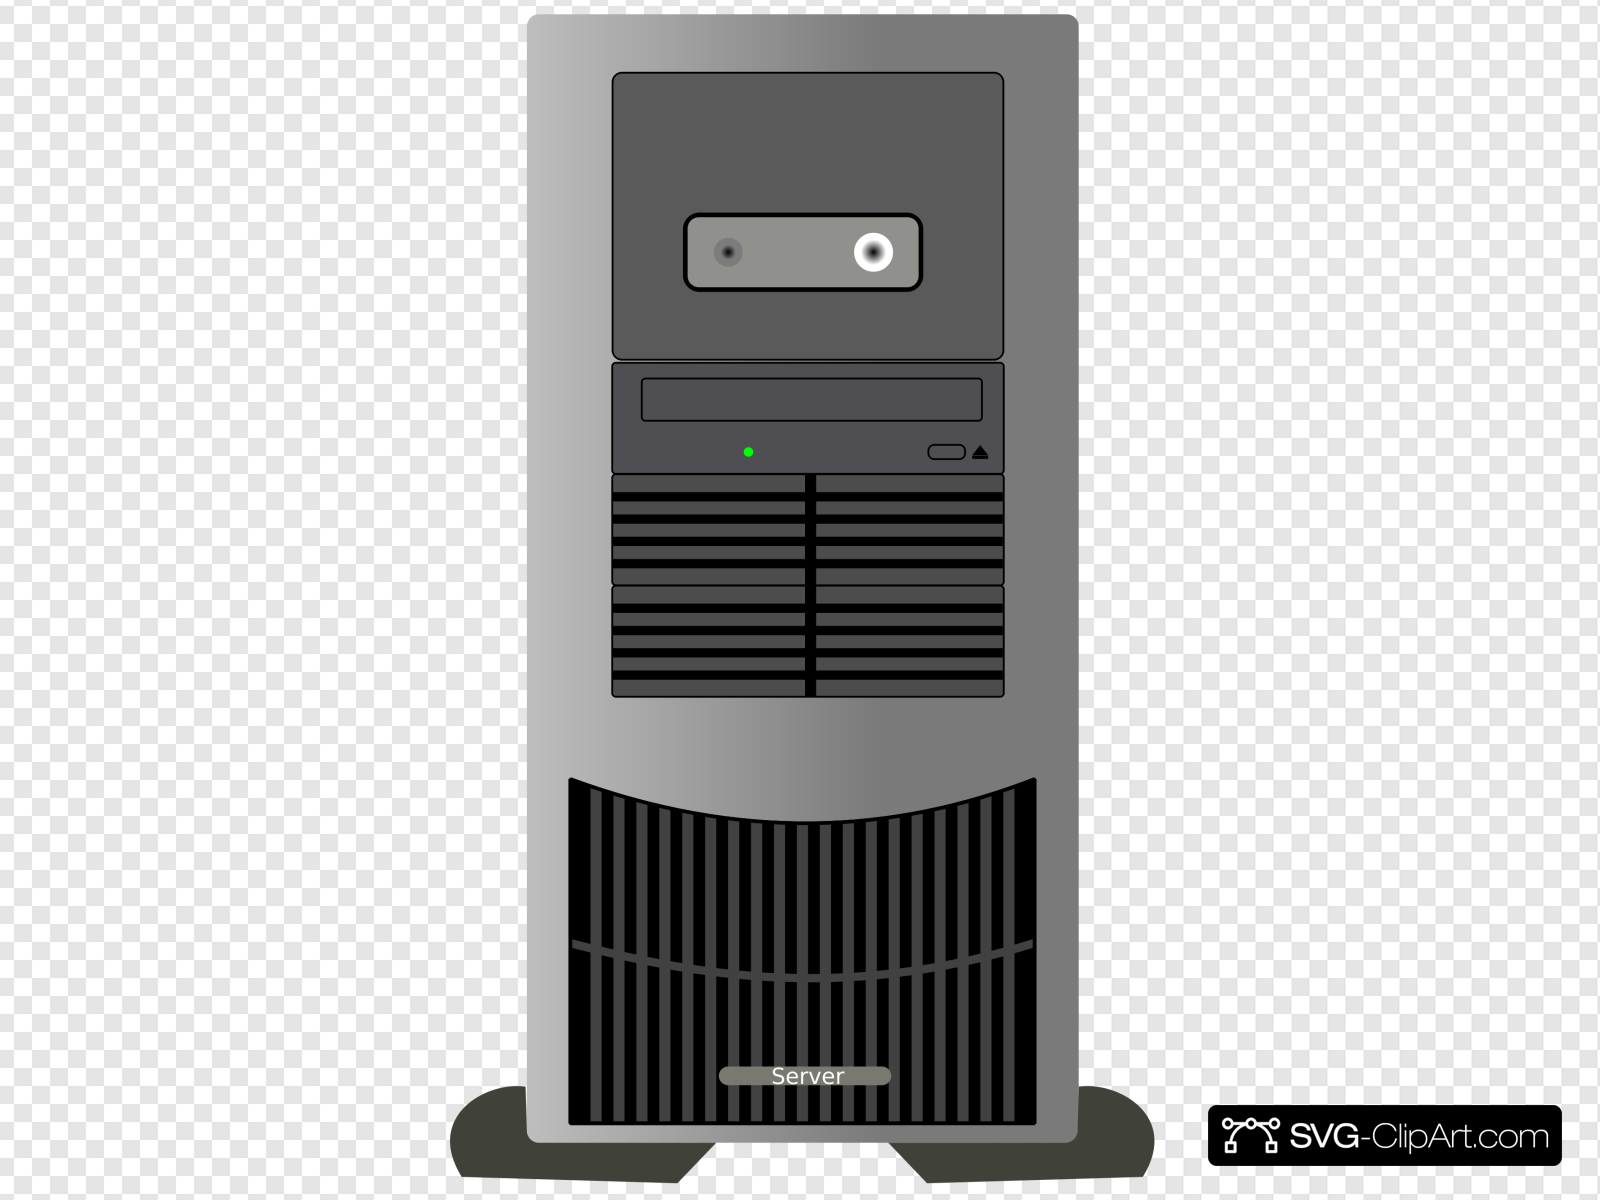 Computer Tower Clip art, Icon and SVG.